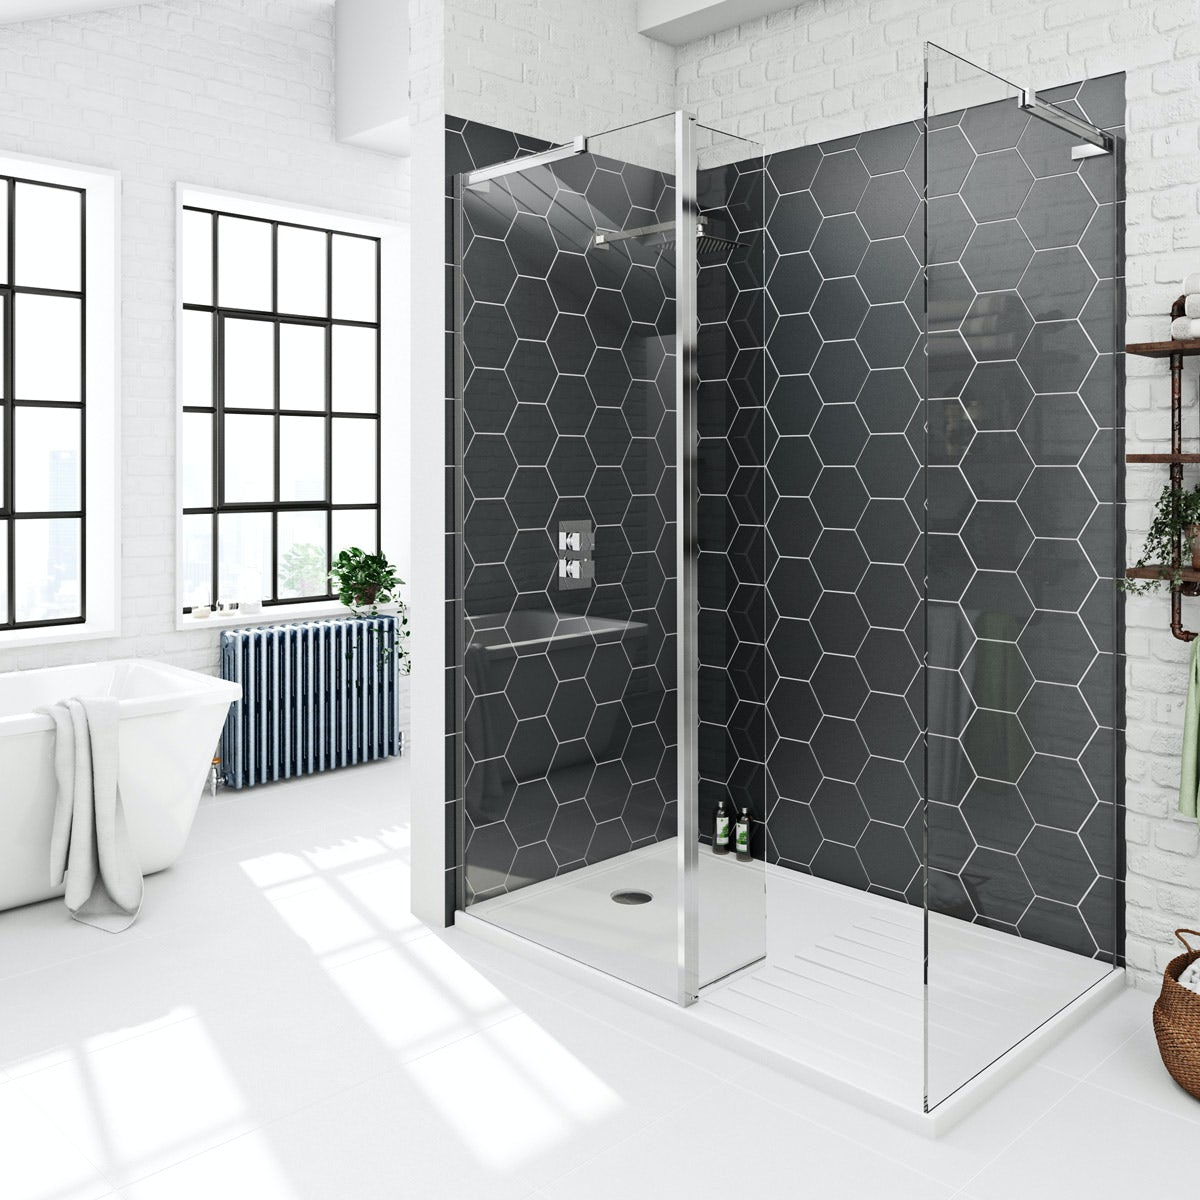 Mode 8mm walk in shower enclosure with tray and hinged return panel 1400 x 900